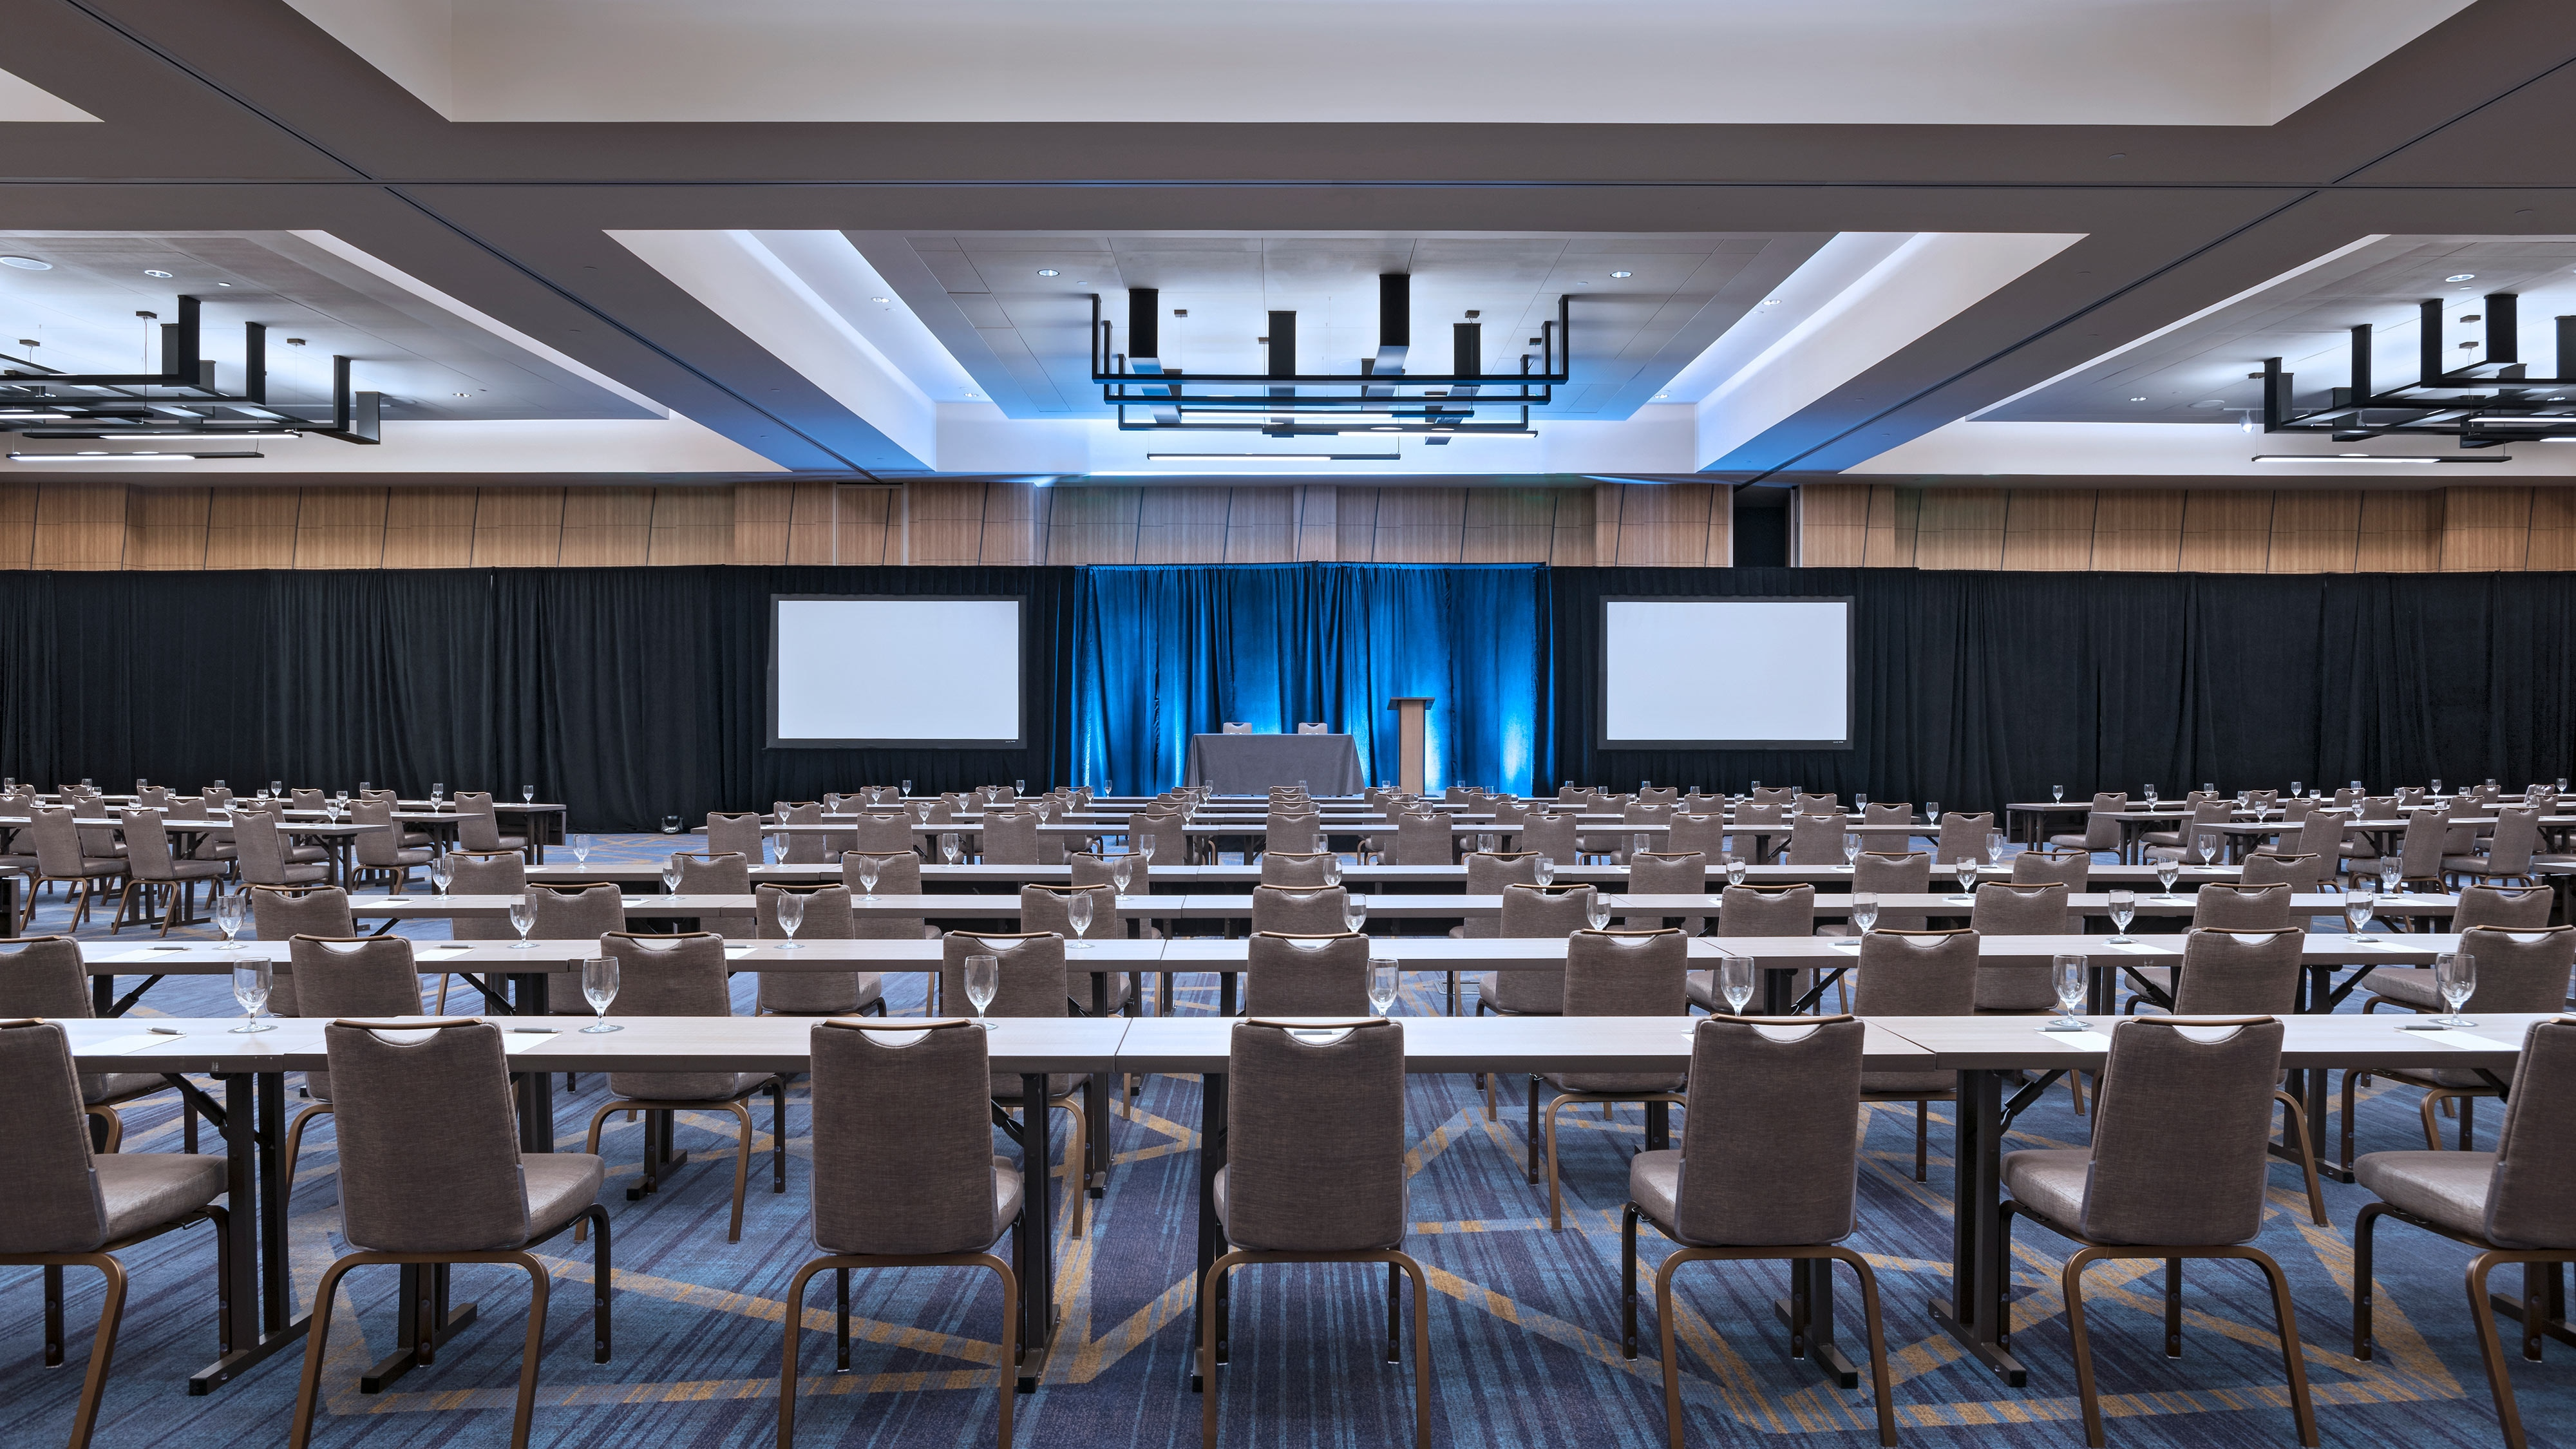 Our Harmony Grand Ballroom features modern design, ample lighting, versatile setups and easily transformable spaces that can break out into 6 different rooms via air walls.